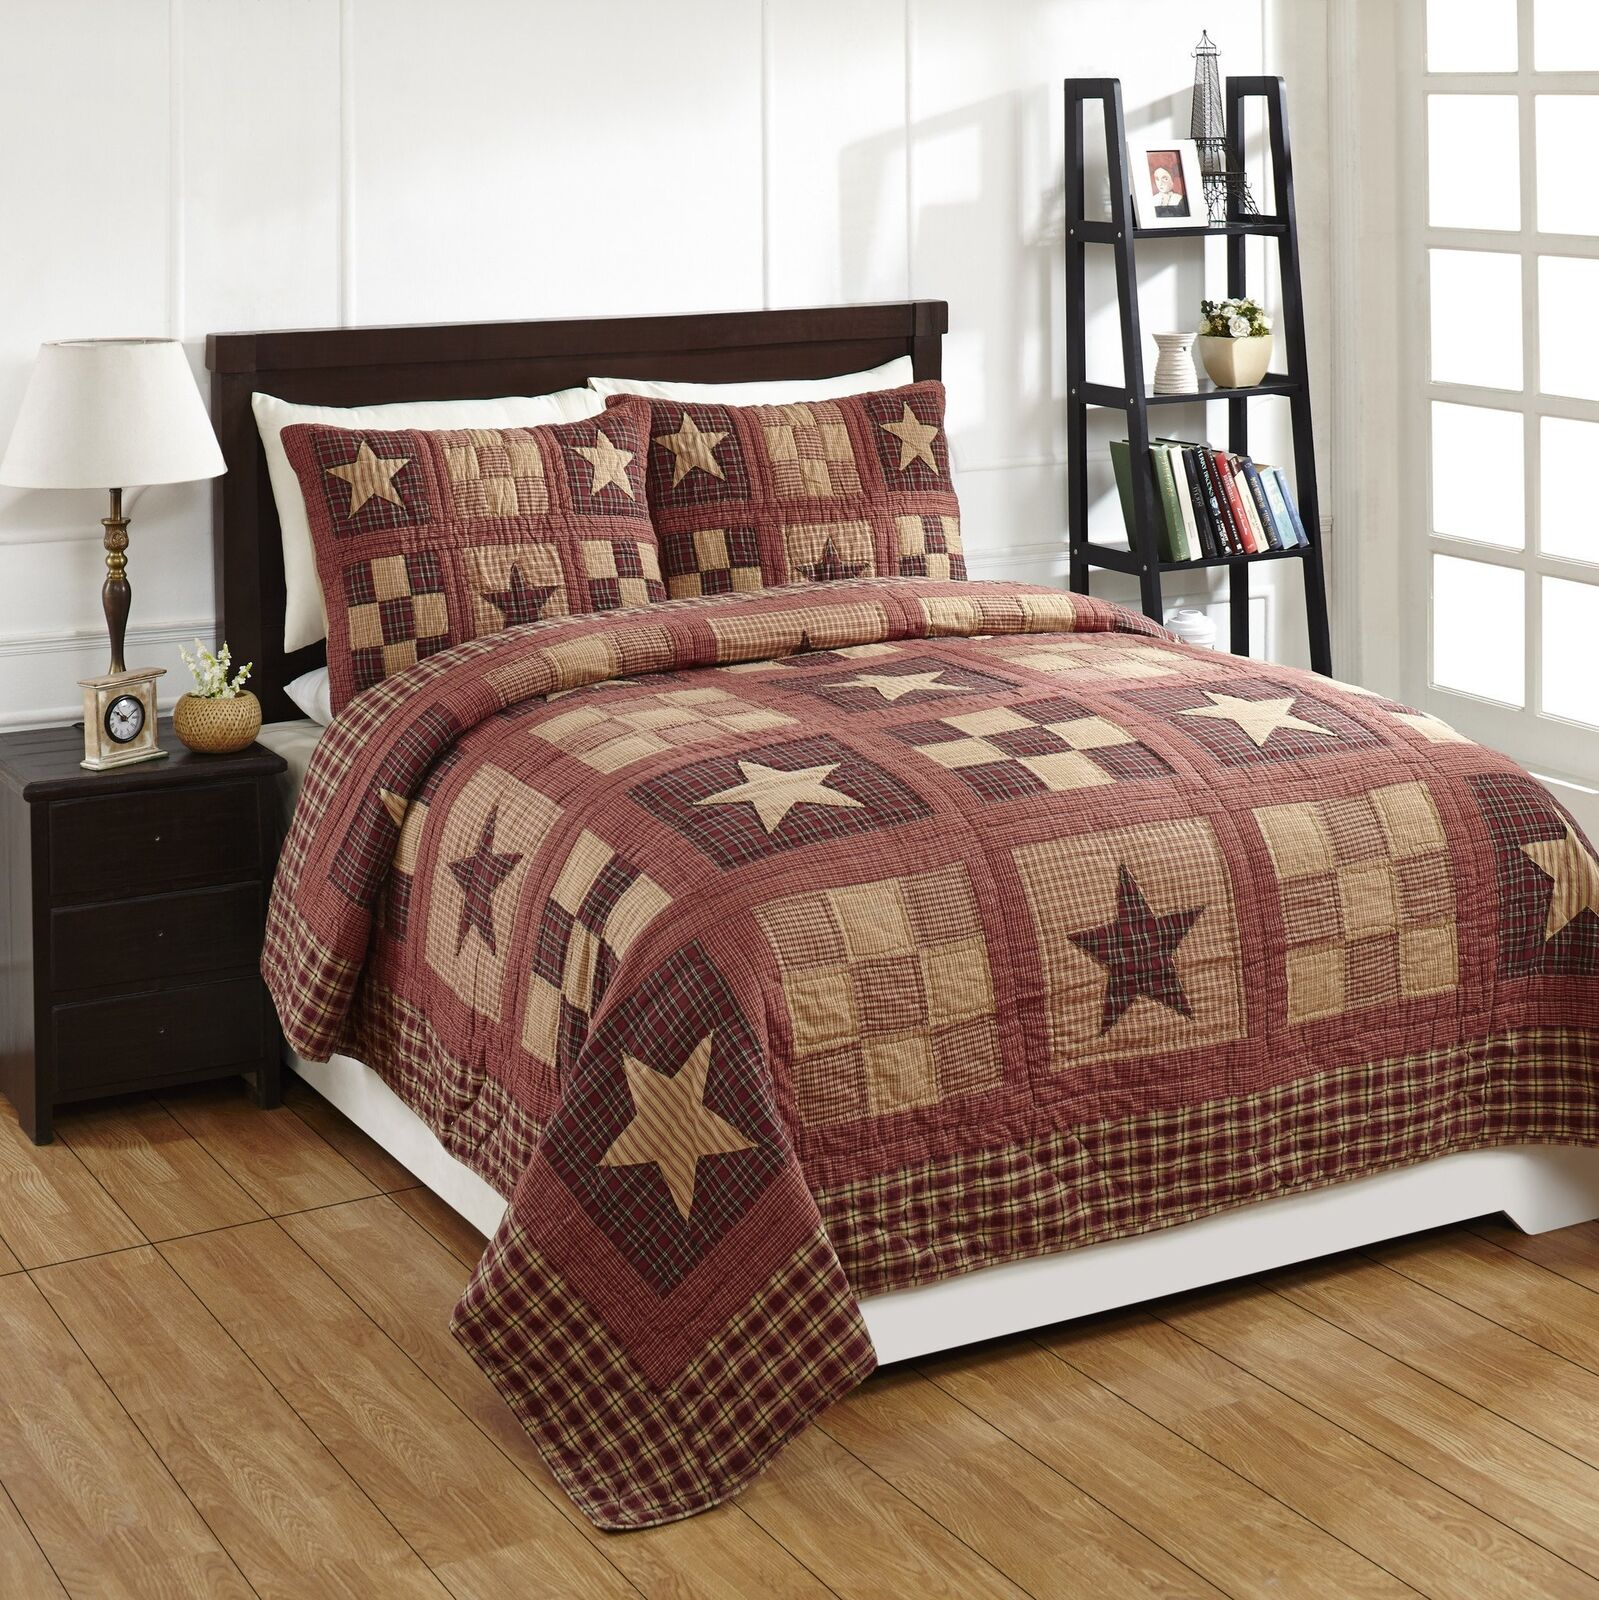 3 Piece QUEEN  BRADFORD STAR  Quilted Bedding SET  Country, Primitive